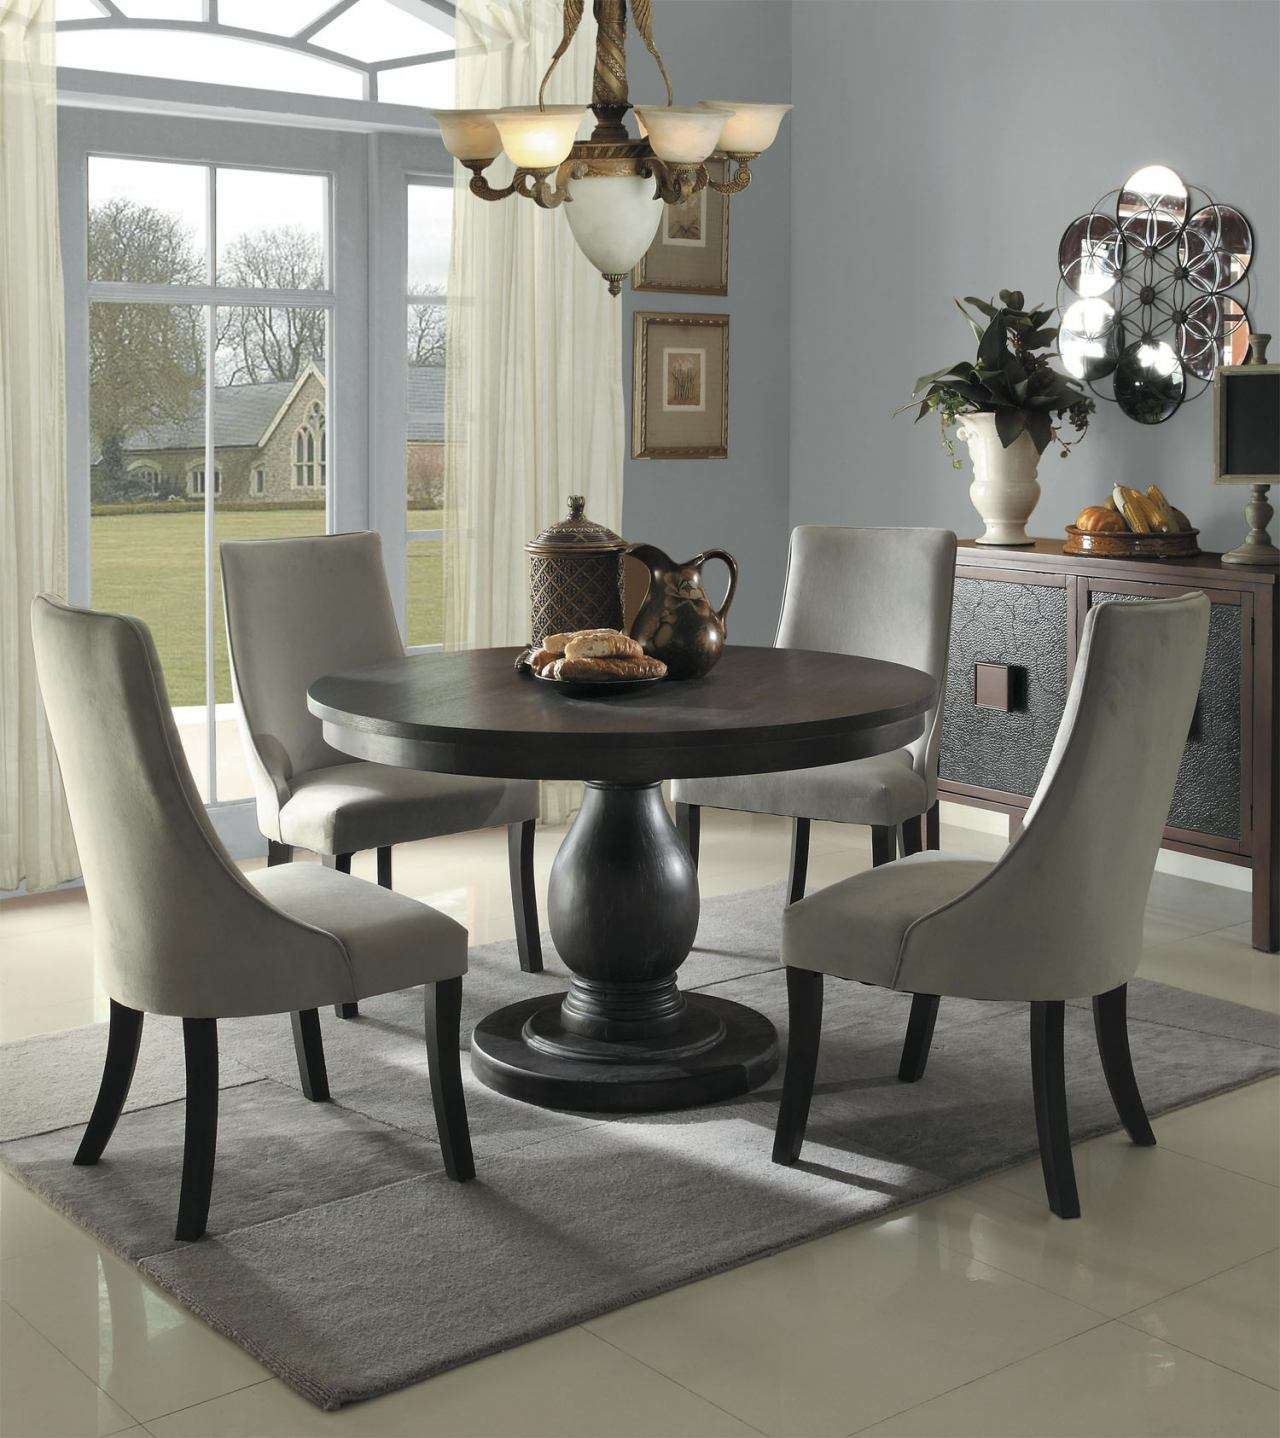 homelegance dandelion 5pc dining table set in taupe kitchen round table set Homelegance Dandelion 5pc Dining Table Set in Taupe